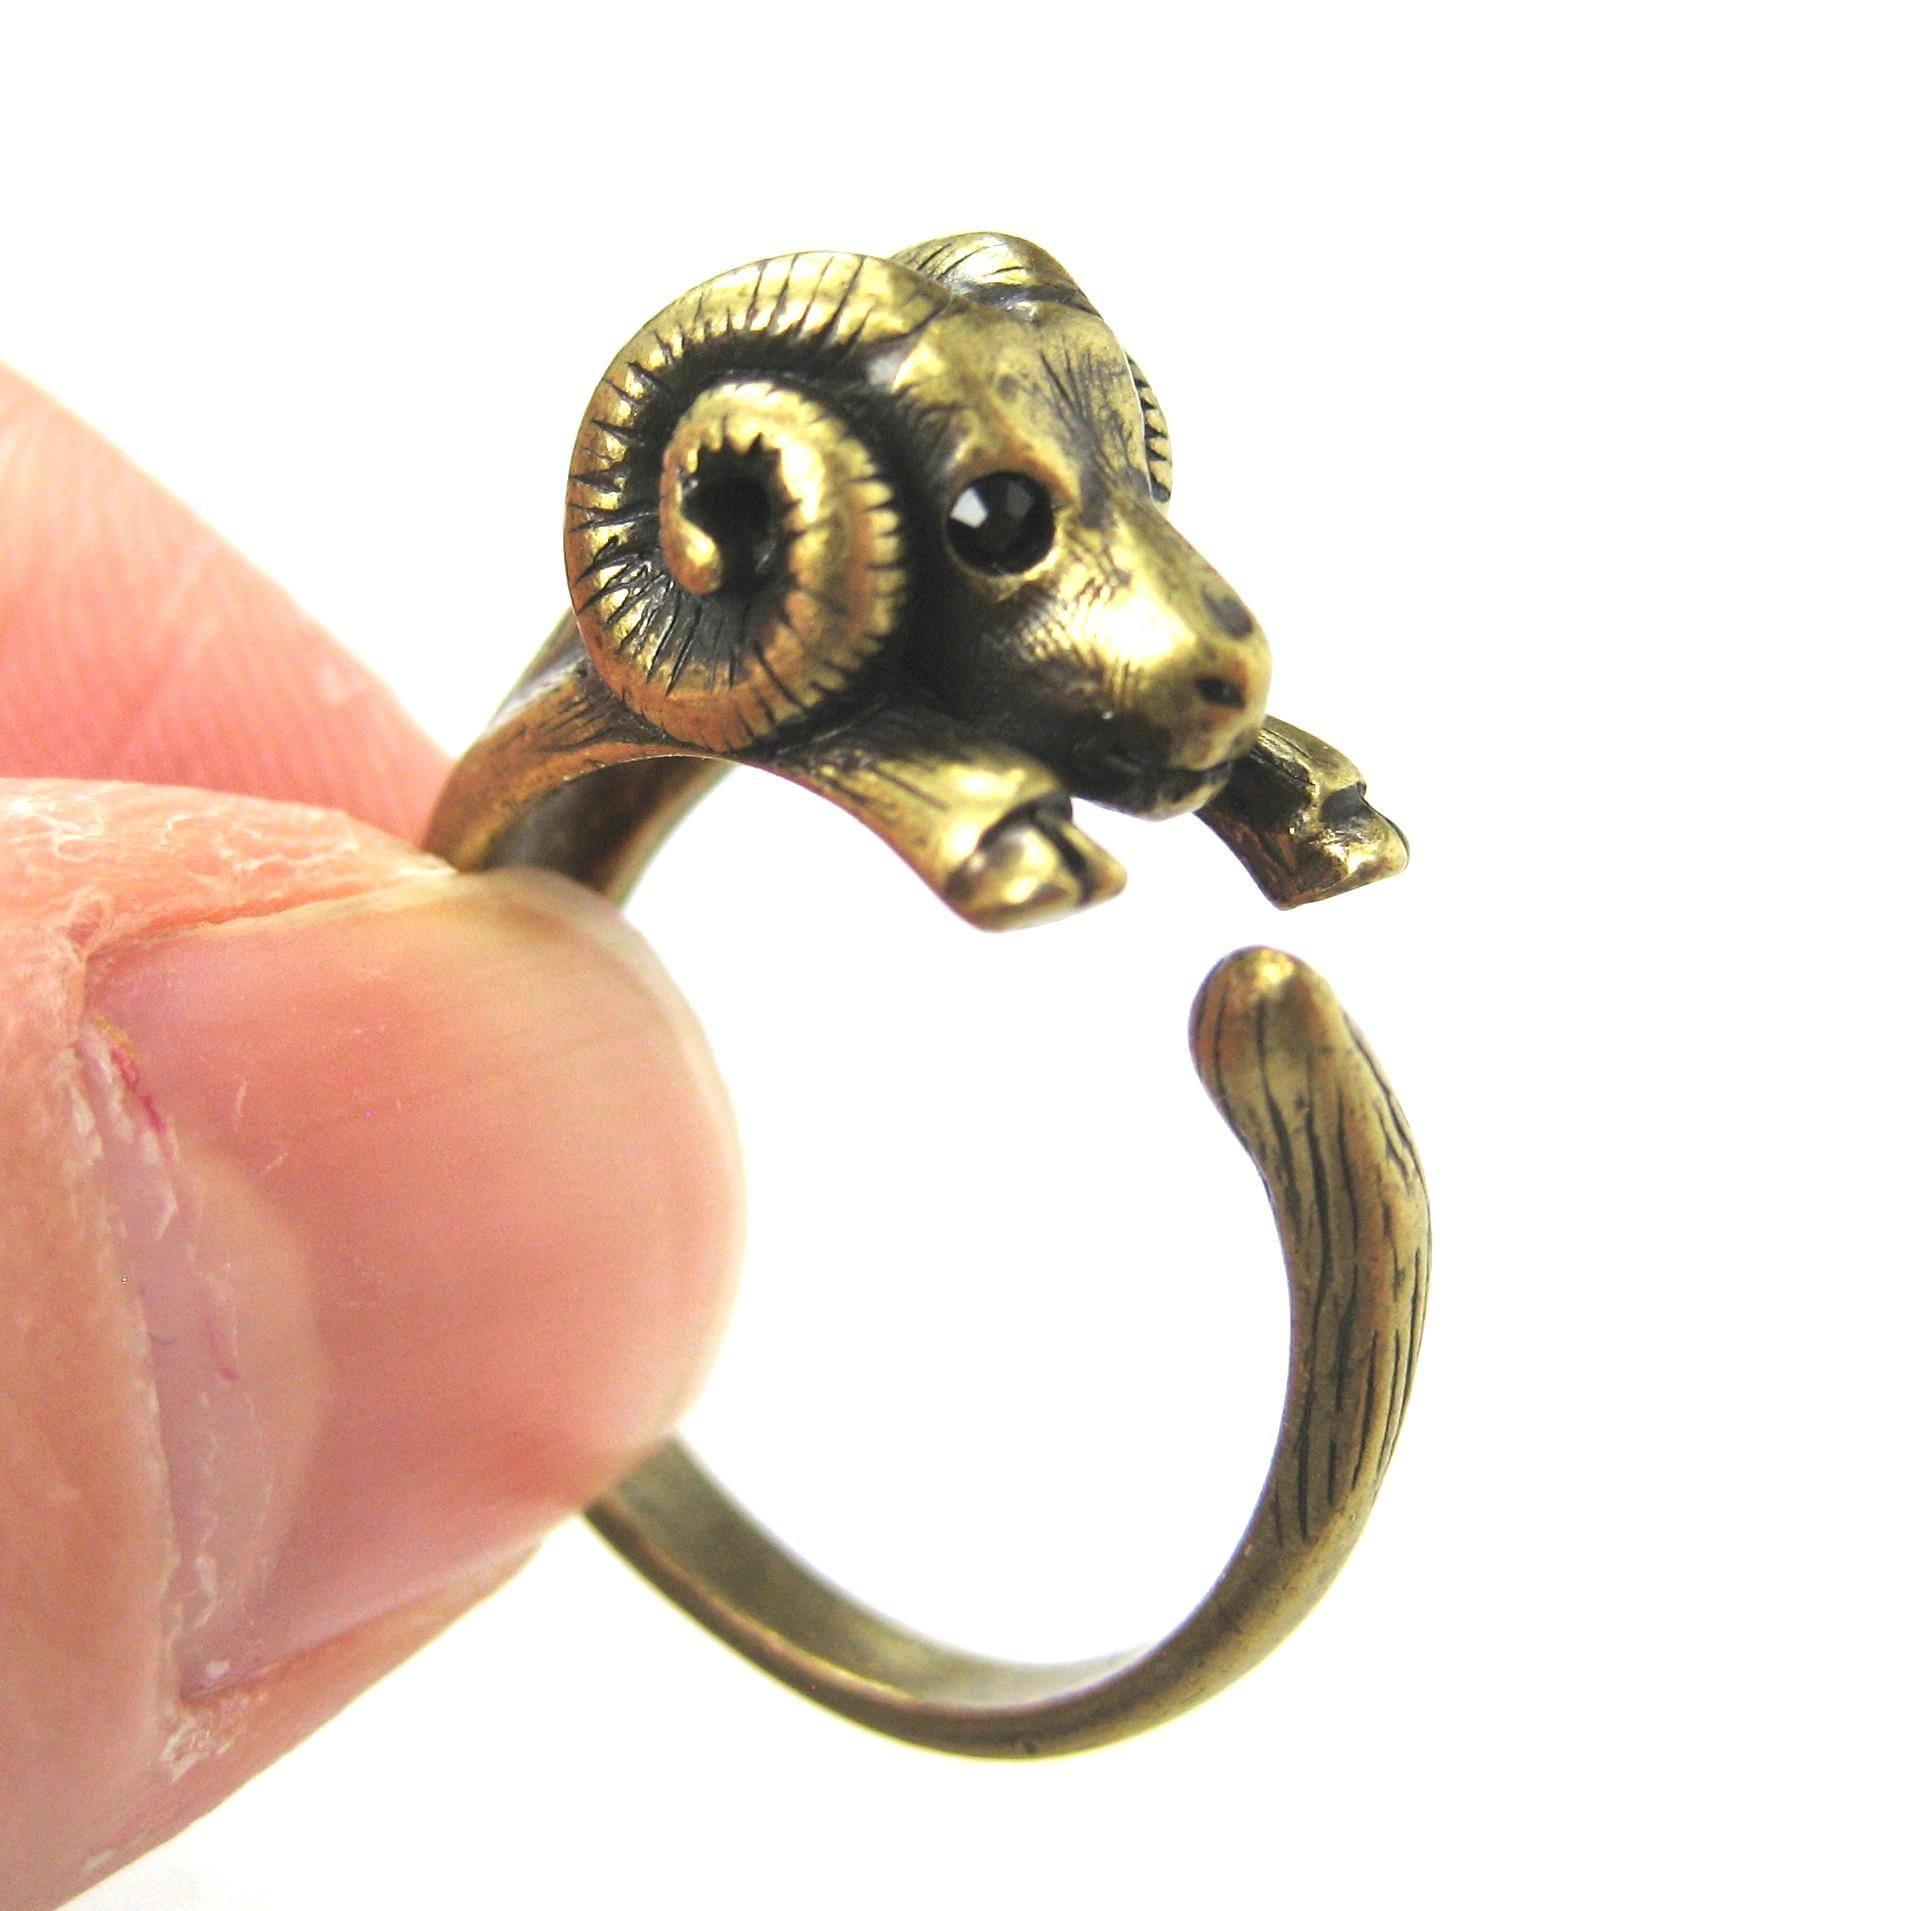 sheep-ram-animal-wrap-ring-in-brass